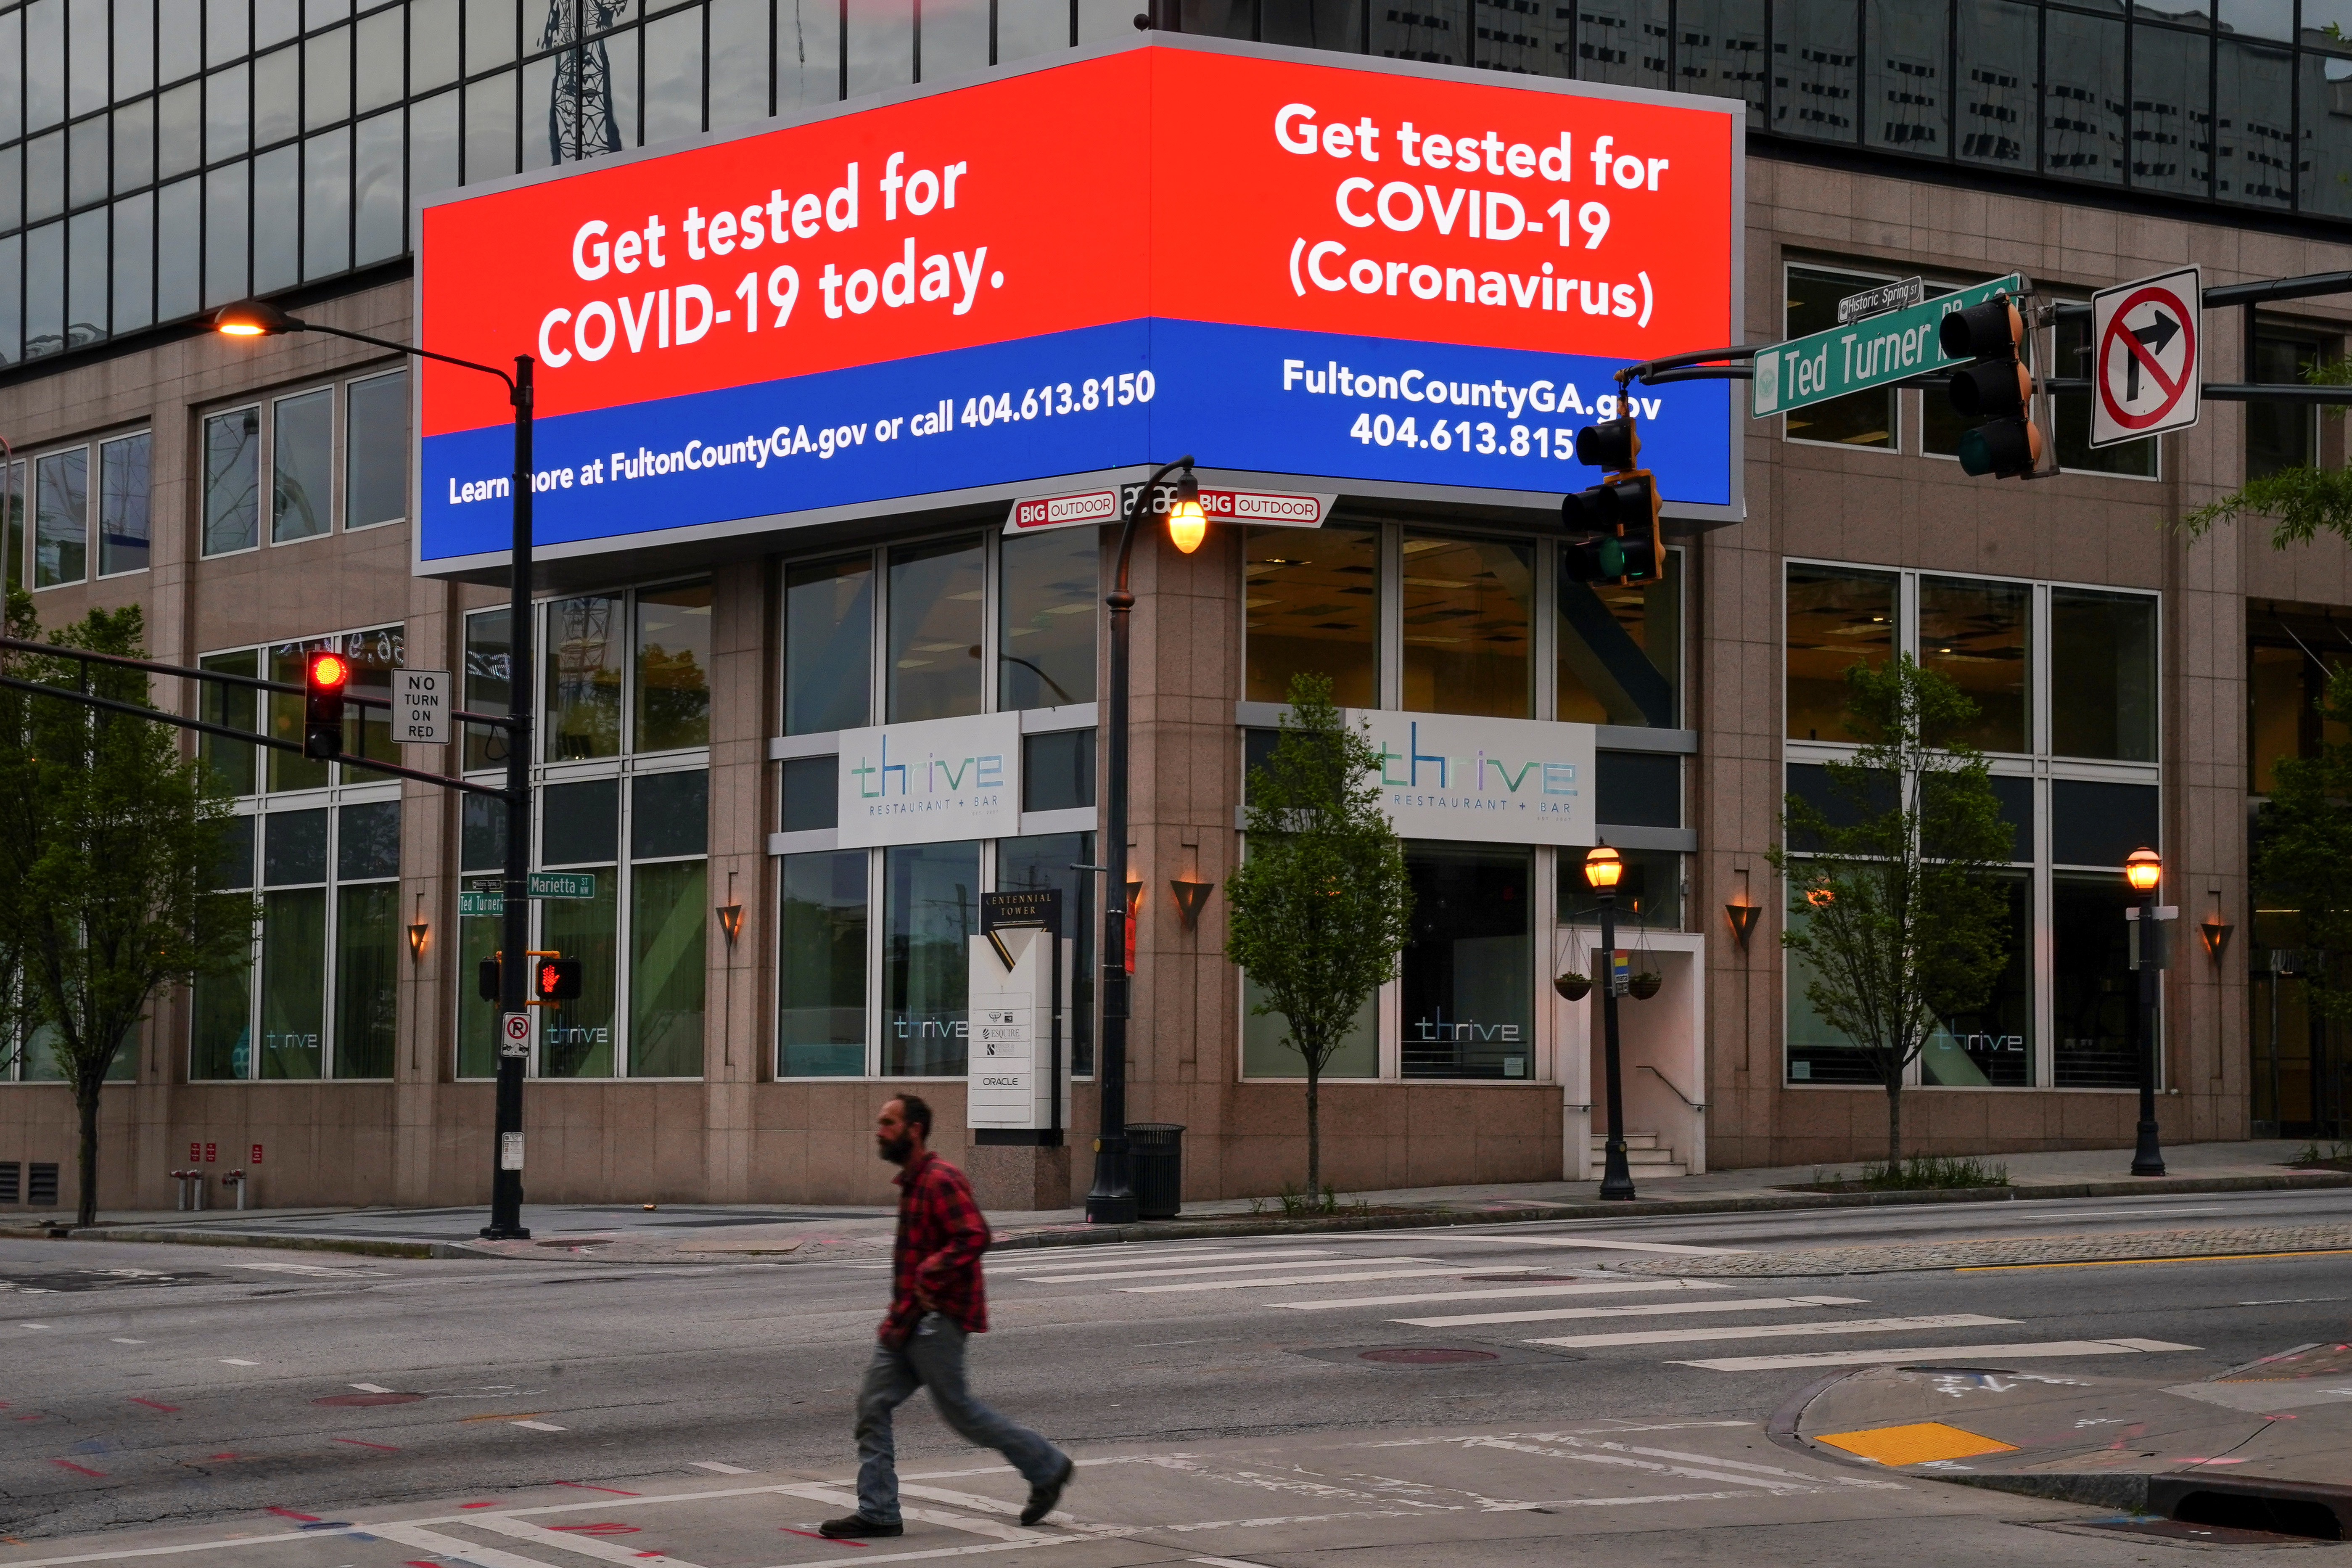 A man walks in front of a sign encouraging the public to get tested for COVID-19, days before the phased reopening of businesses and restaurants from coronavirus disease (COVID-19) restrictions in Atlanta, Georgia, U.S. April 22, 2020. REUTERS/Elijah Nouvelage